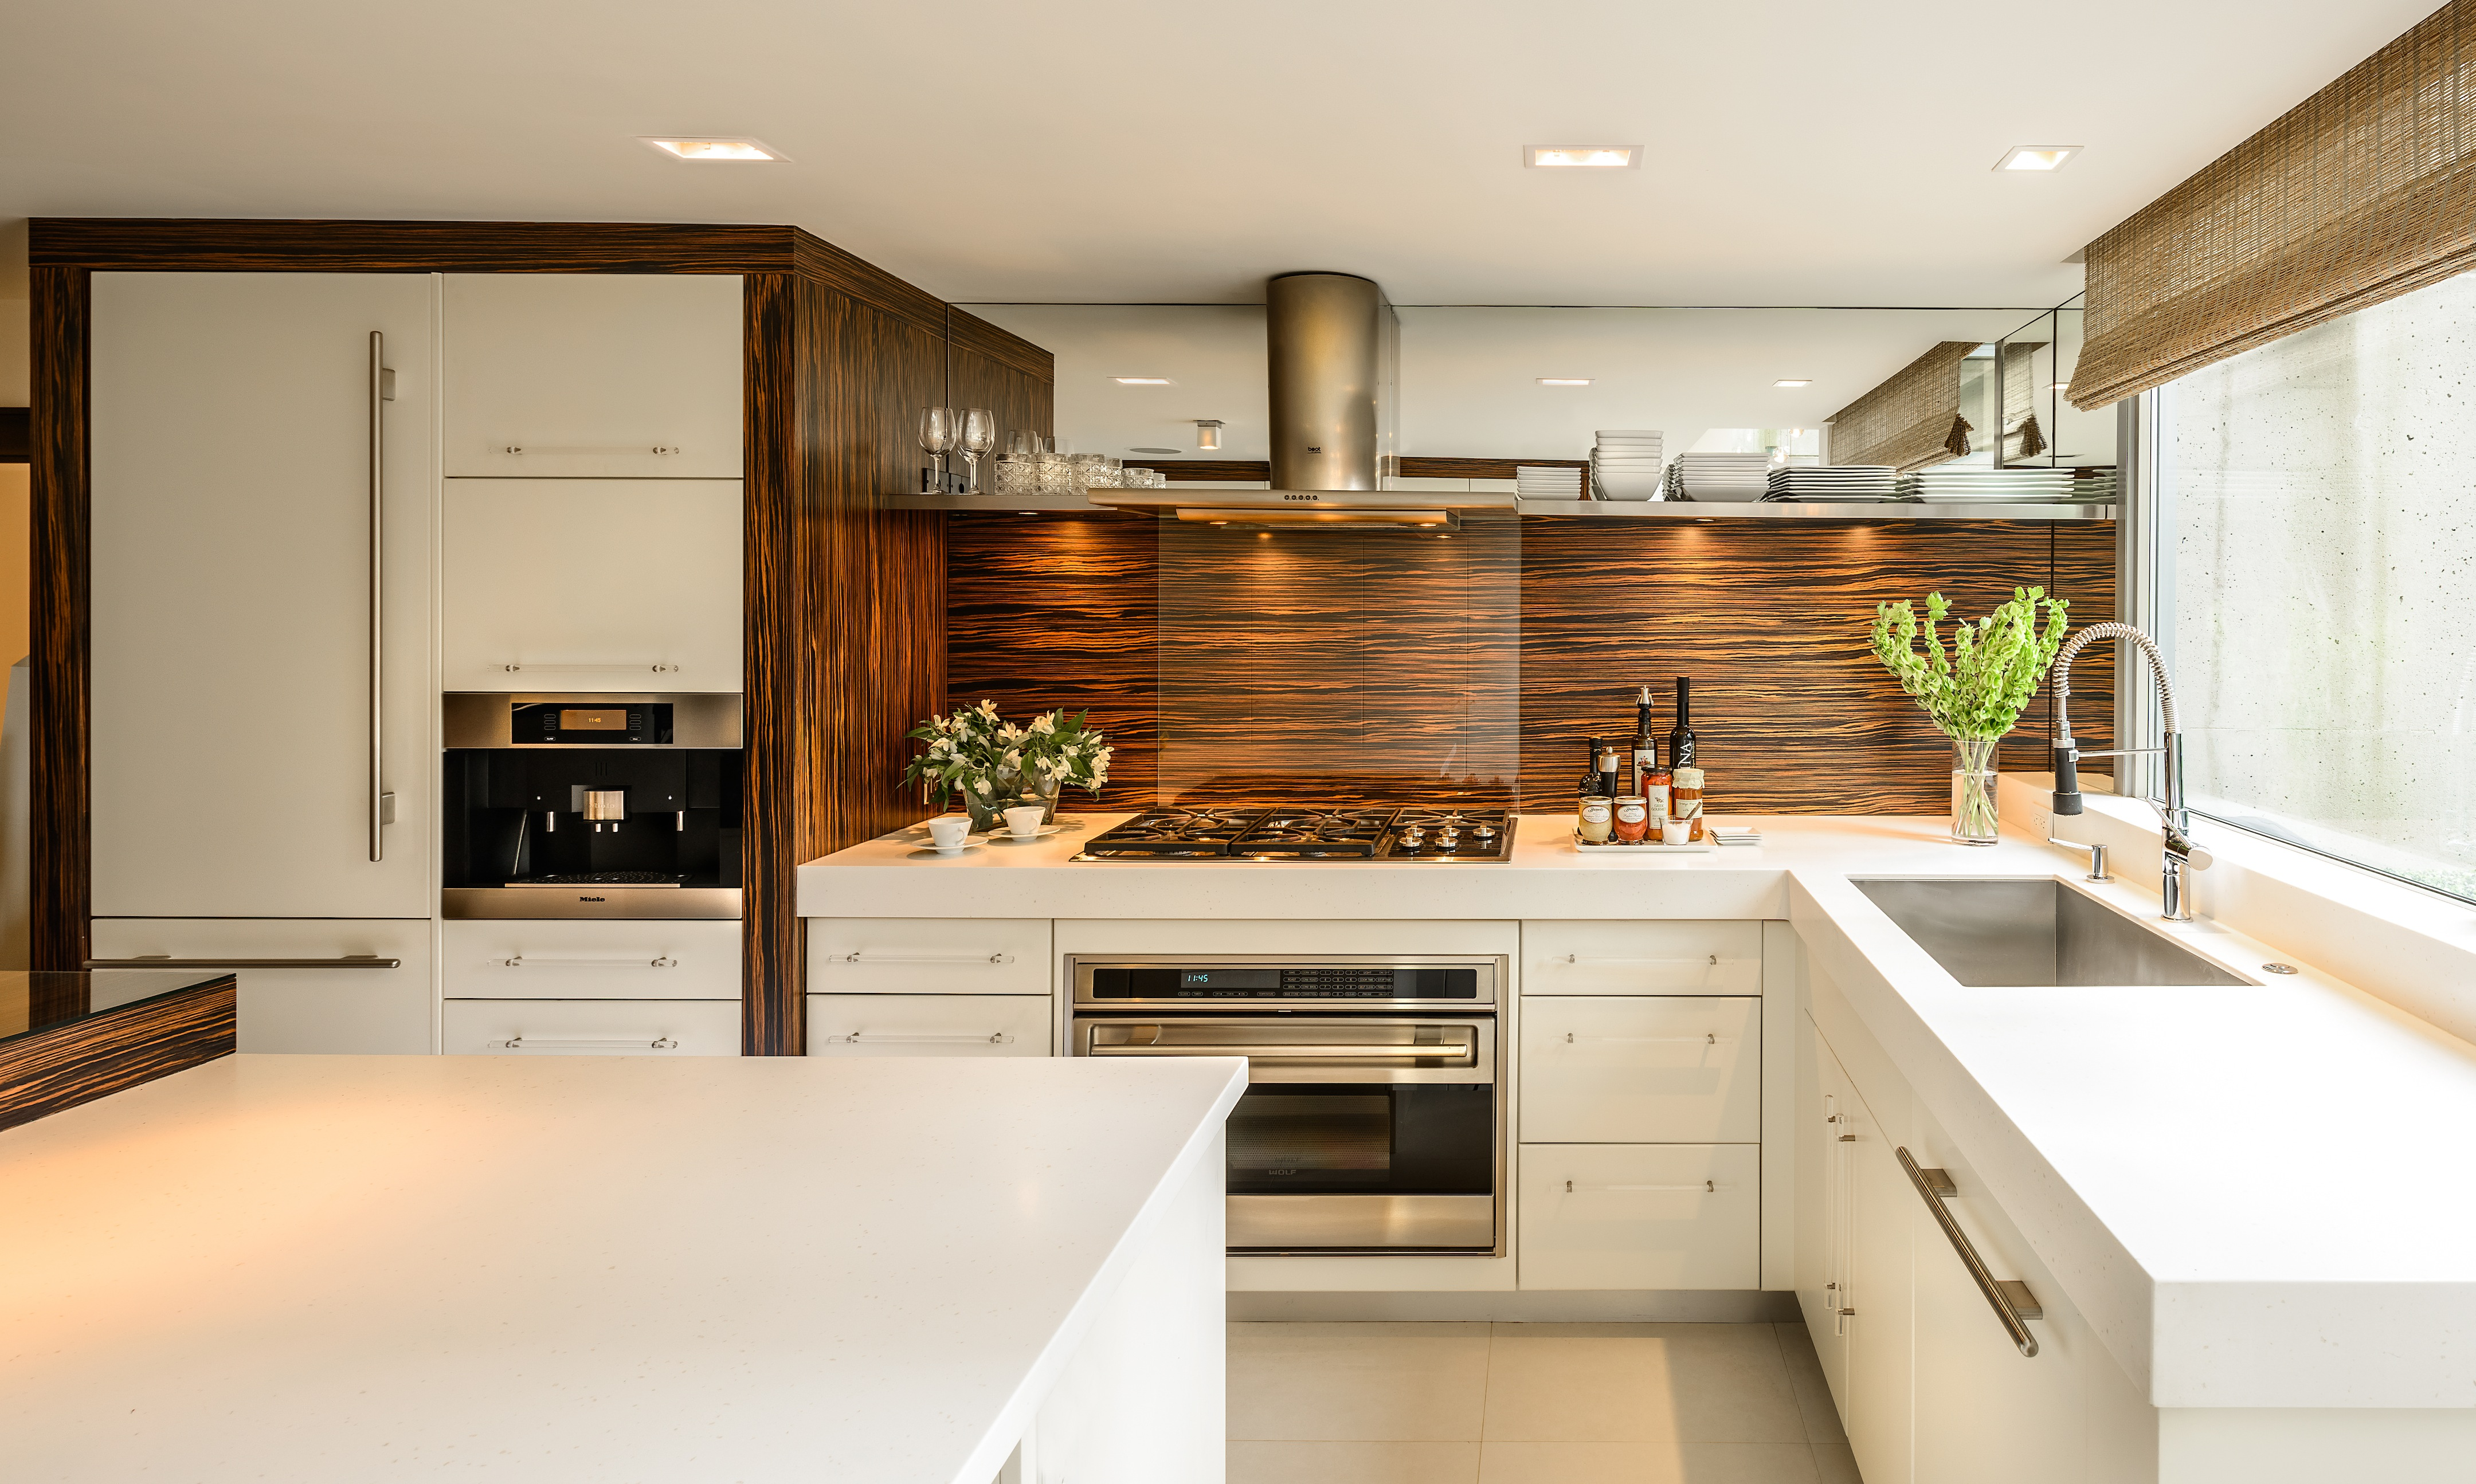 kitchens designs source PNCPZFO